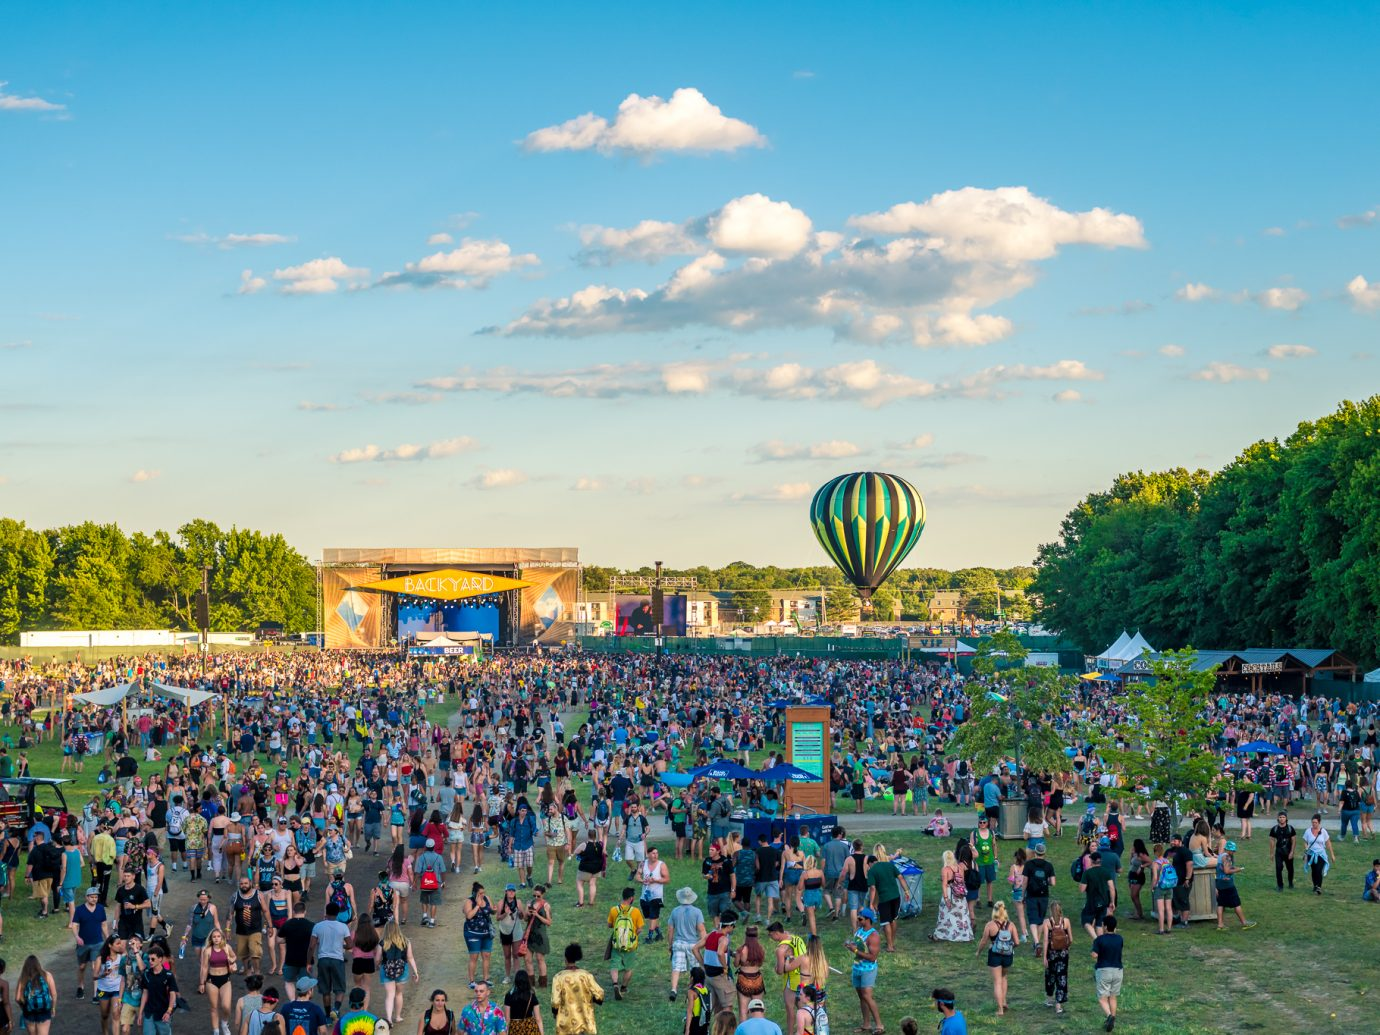 festivalgoers taken from overhead with views of sunny day, hot air balloon, and stage